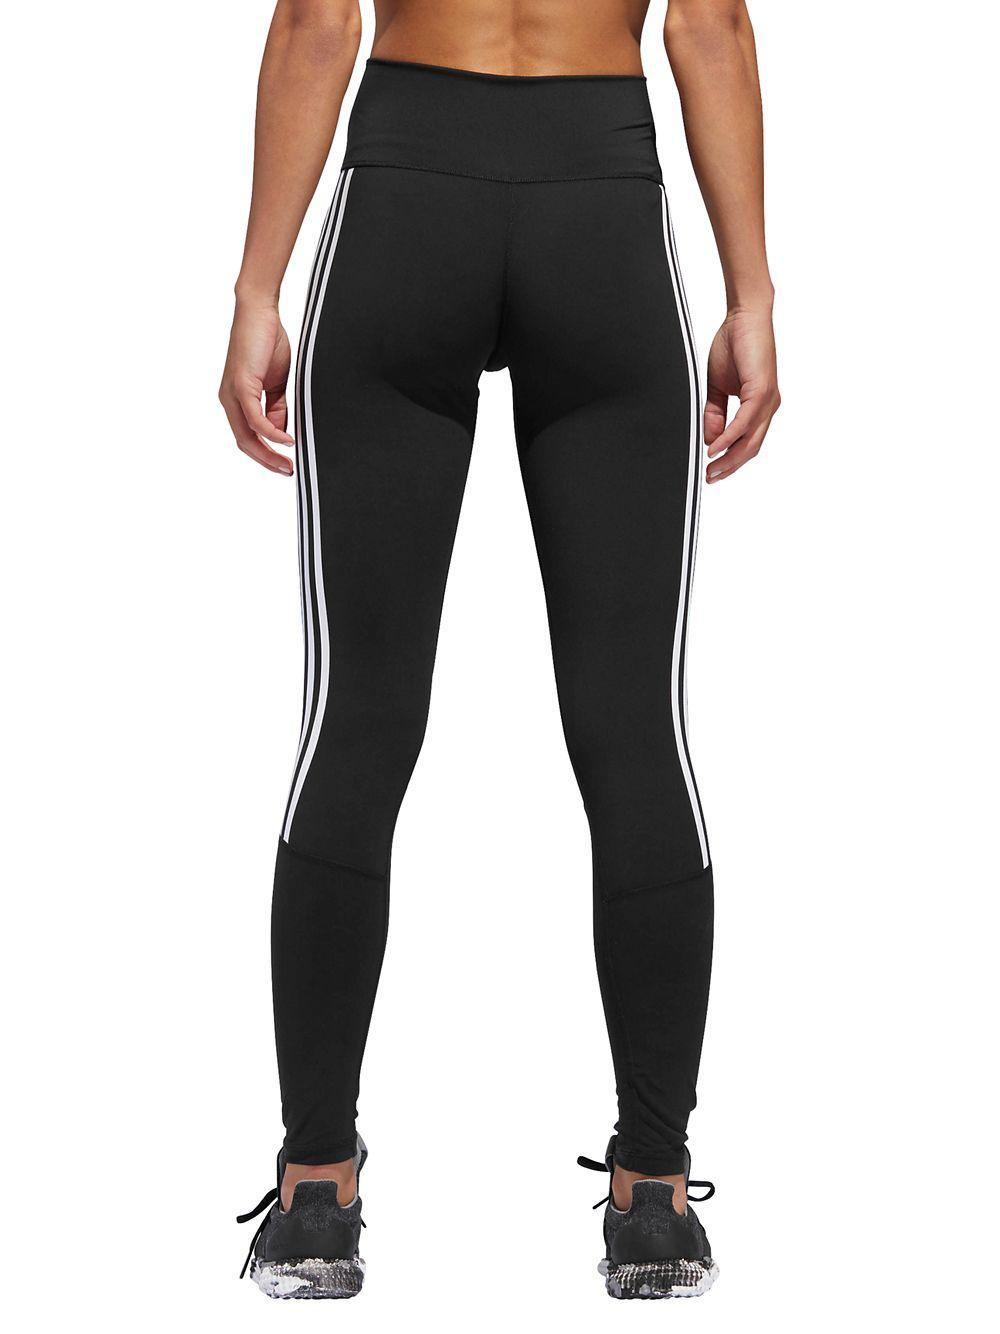 5f748fb8002adc Adidas Believe This High-rise 7/8 Tights in Black - Lyst